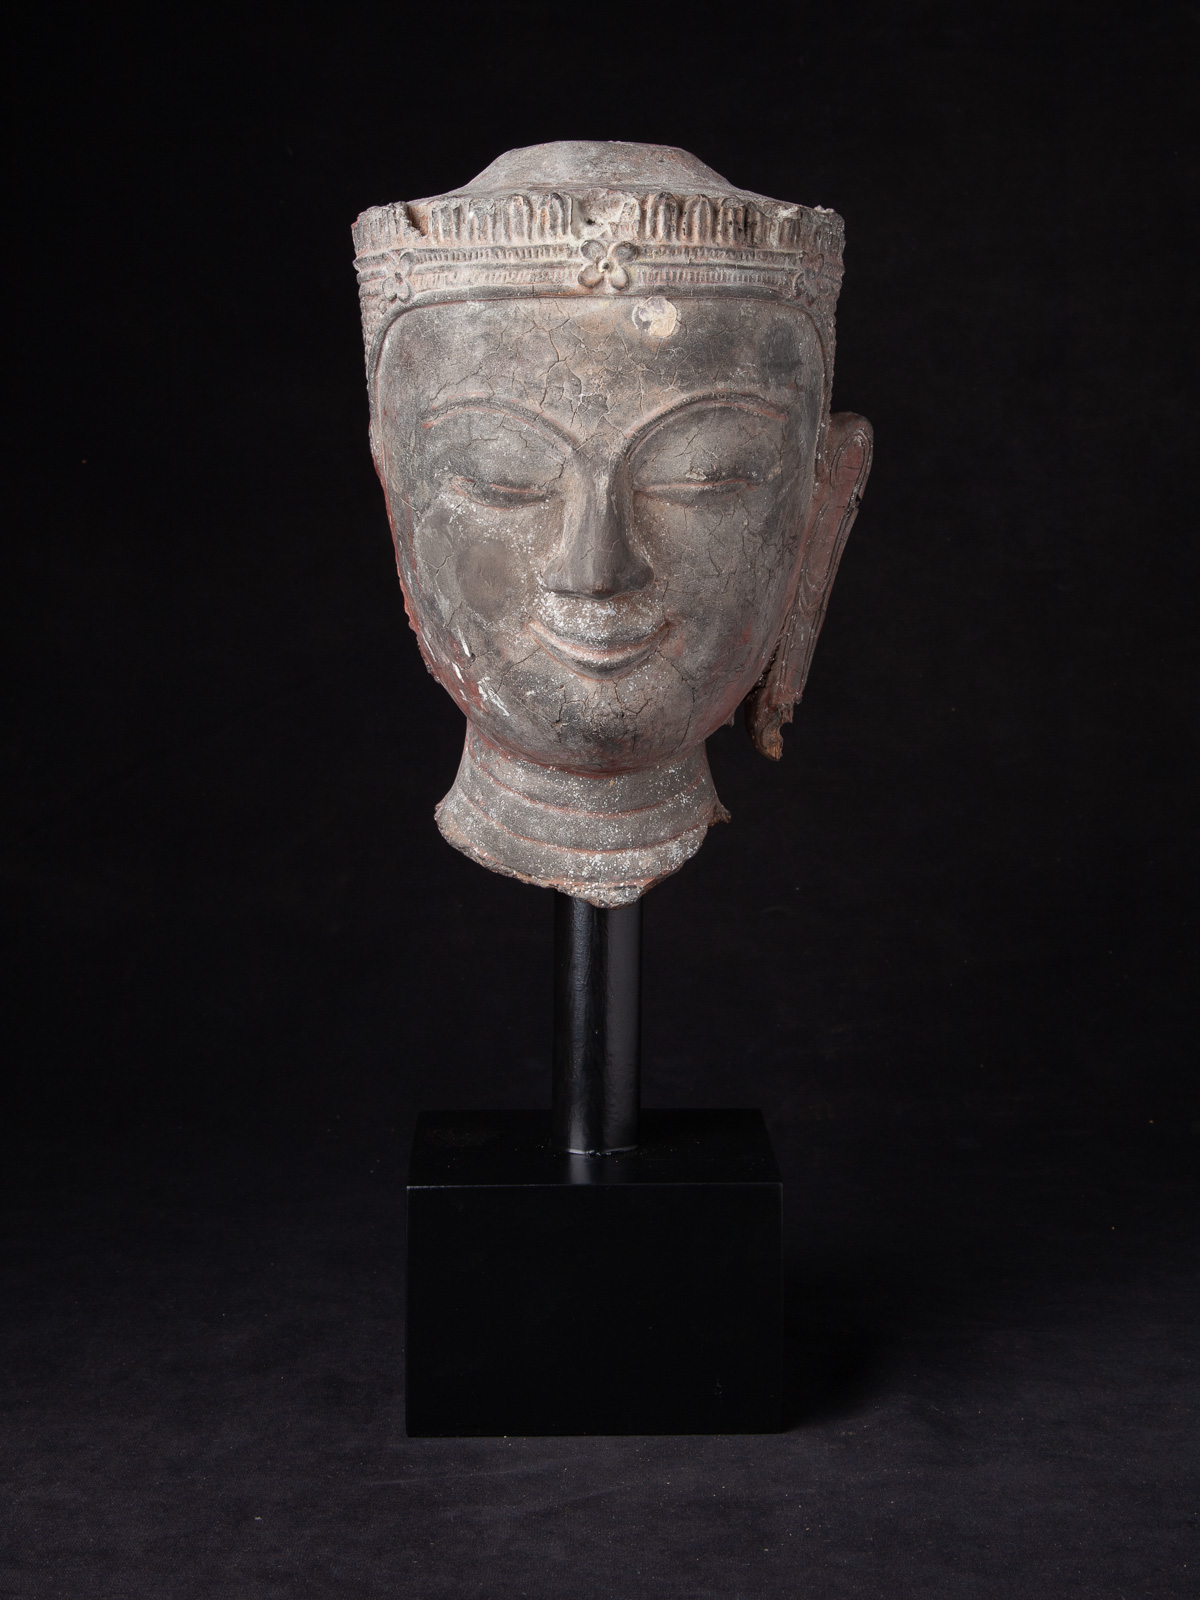 Antique Burmese Buddha head from Burma